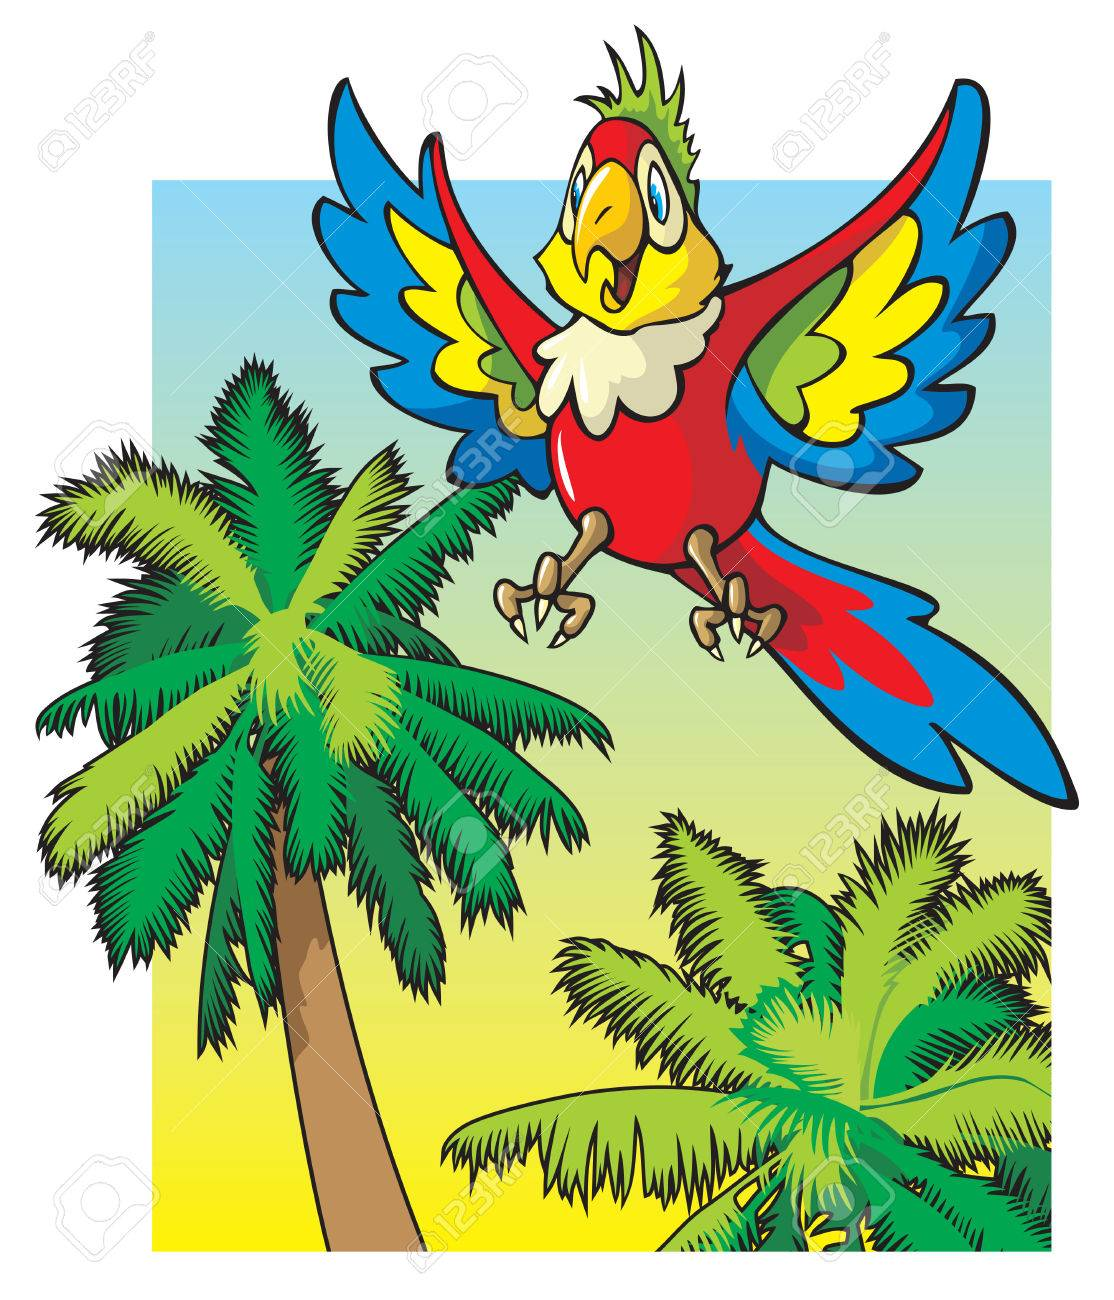 Bright Colored Parrot Flying Among The Palm Trees, Cartoon Vector ...